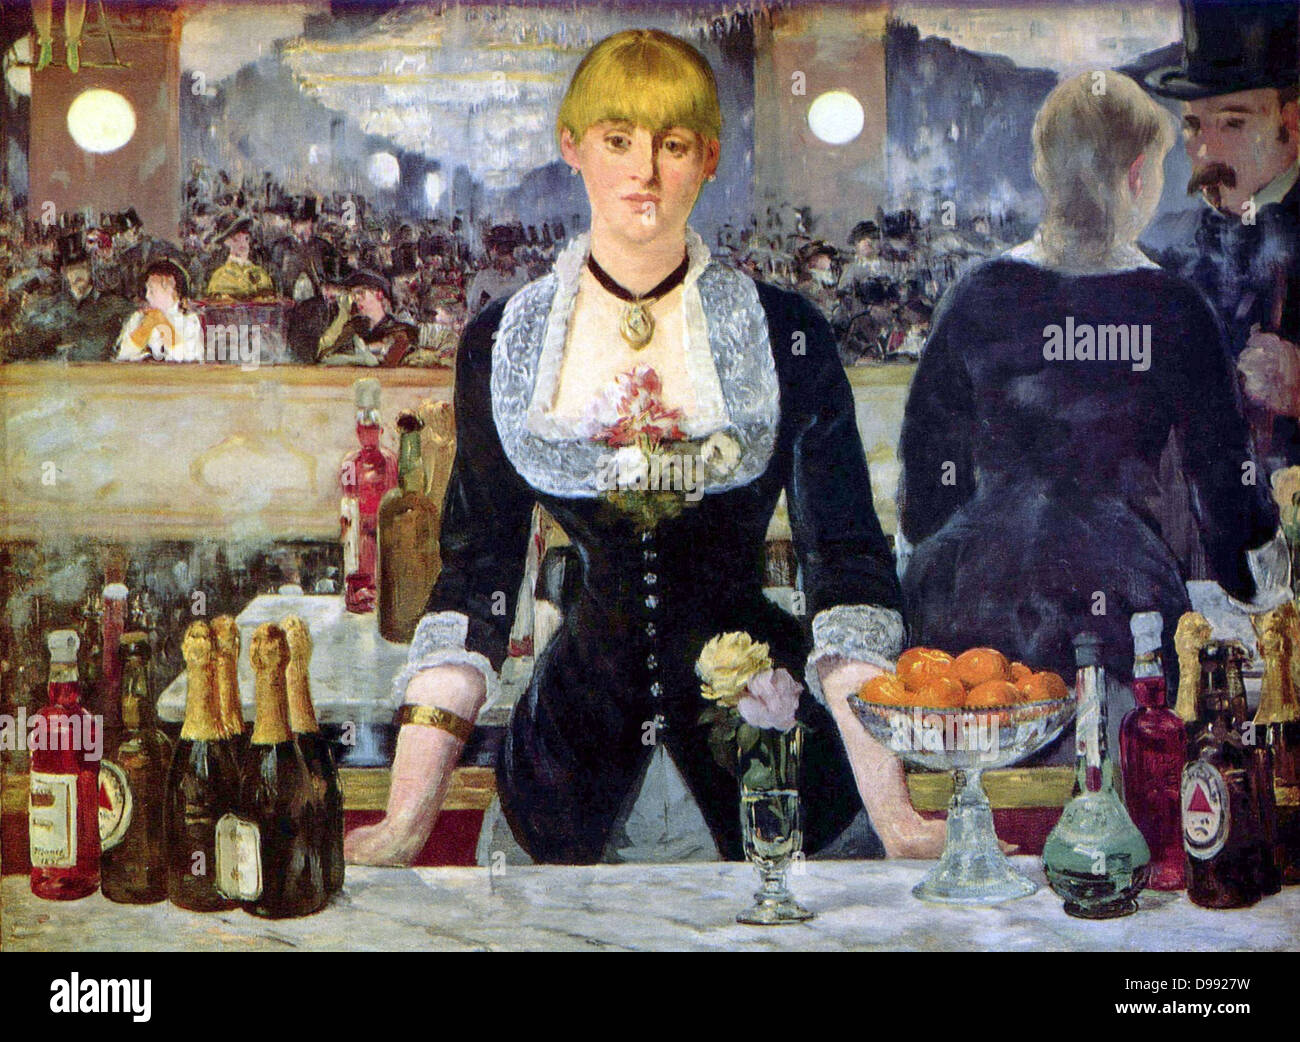 Bar at the Folies Bergere', 1882, the artist's last major work. Oil on canvas. Edouard Manet (1832-1883) - Stock Image